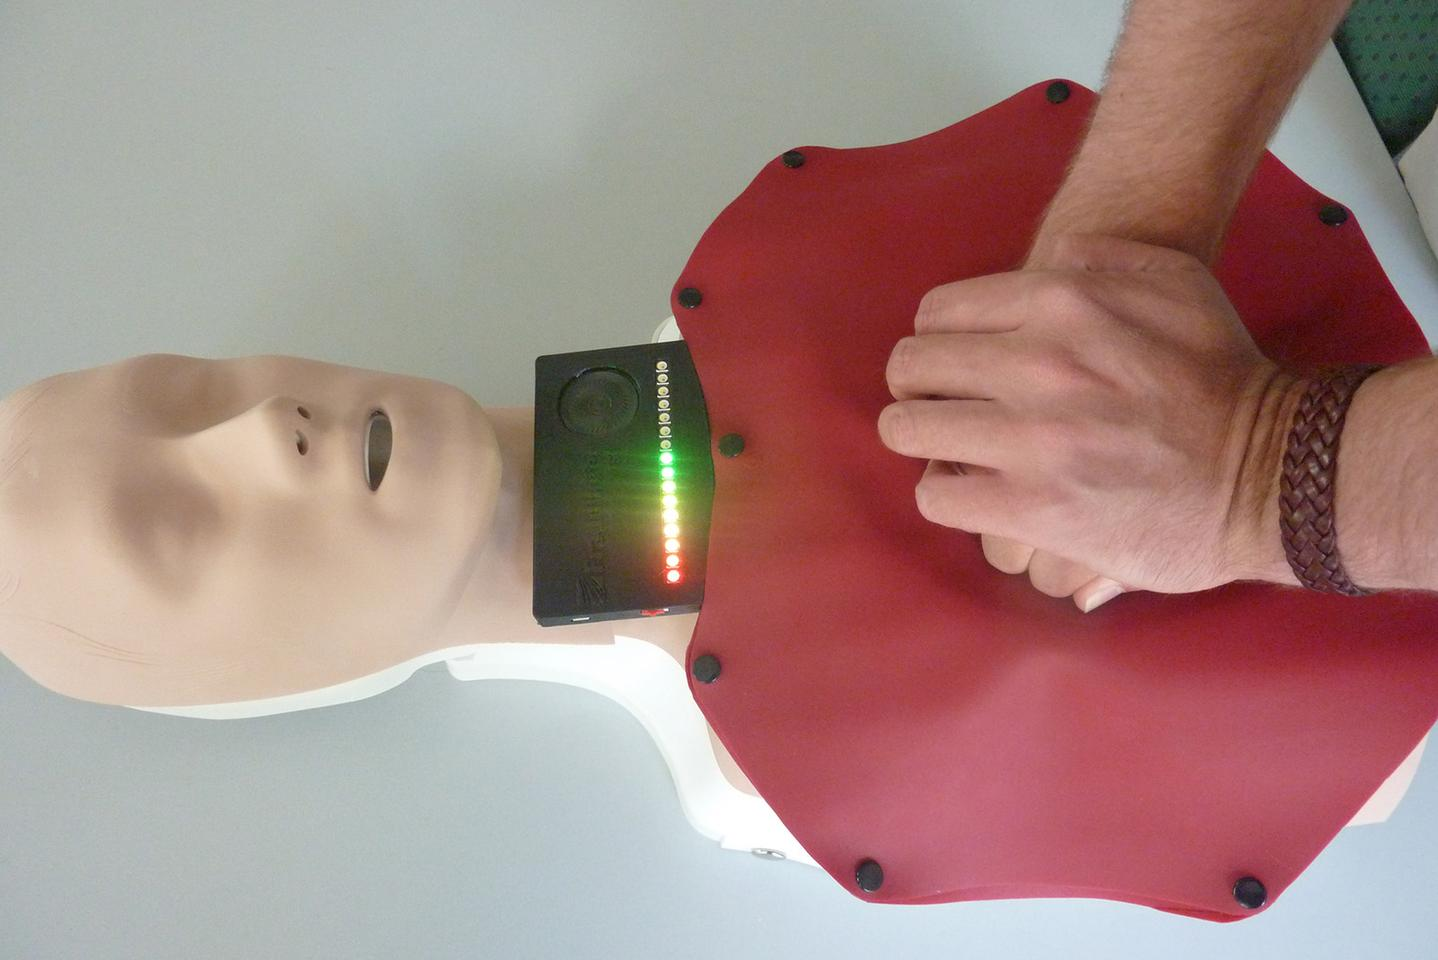 Unlike some similar devices, the mat utilizes soft sensors that don't hurt the user's hands